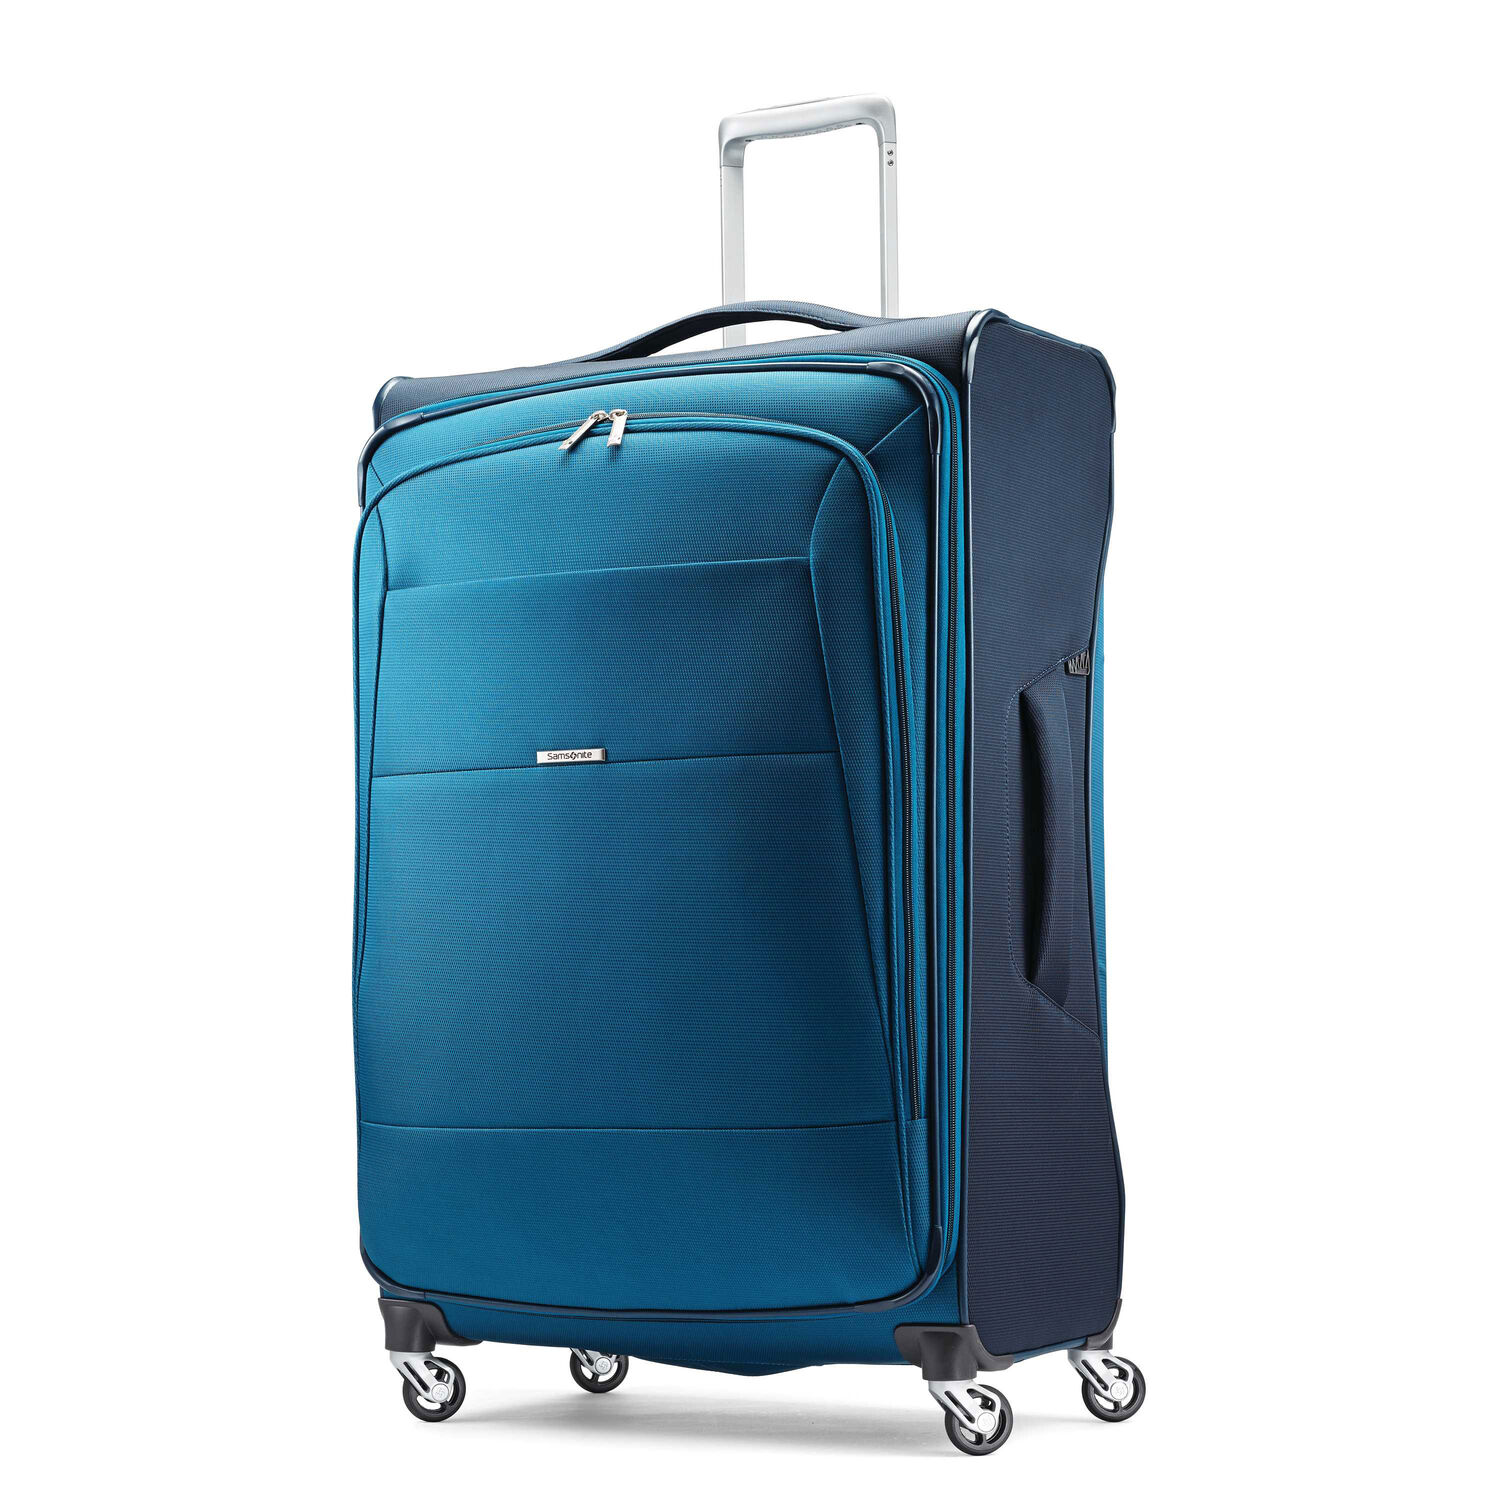 Samsonite Eco Nu 29 Quot Expandable Spinner